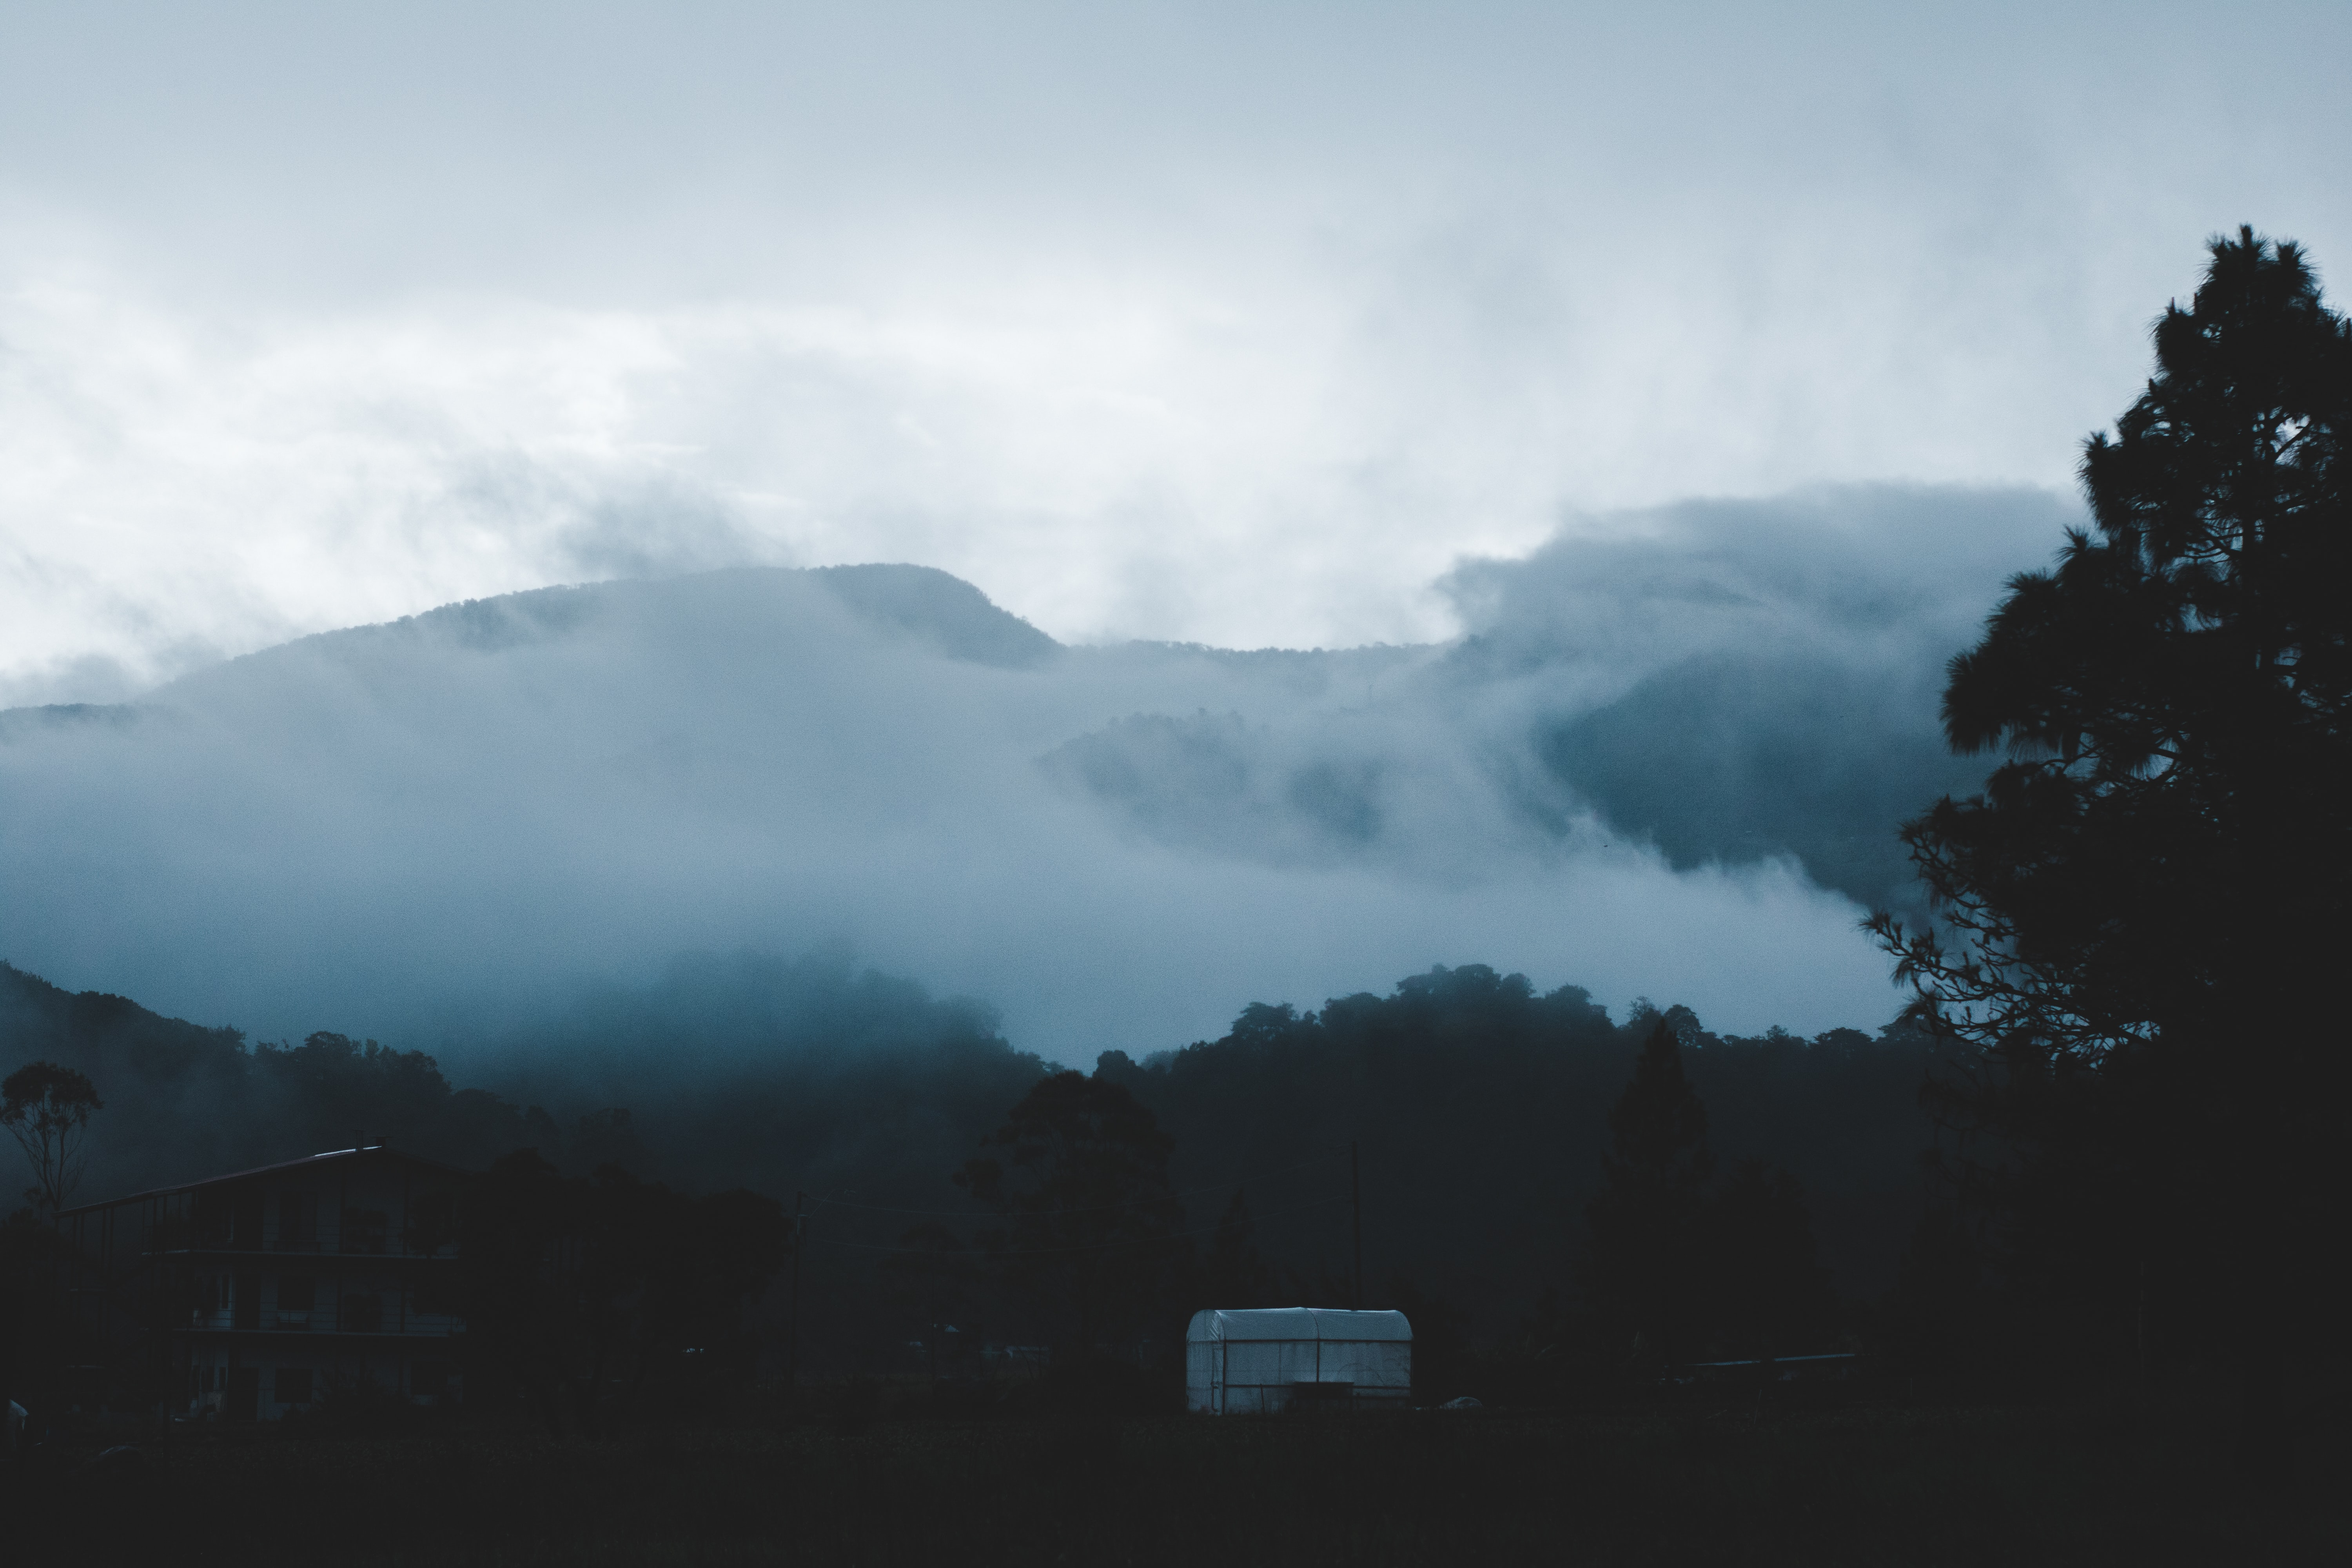 mountain covered with fog during daytime